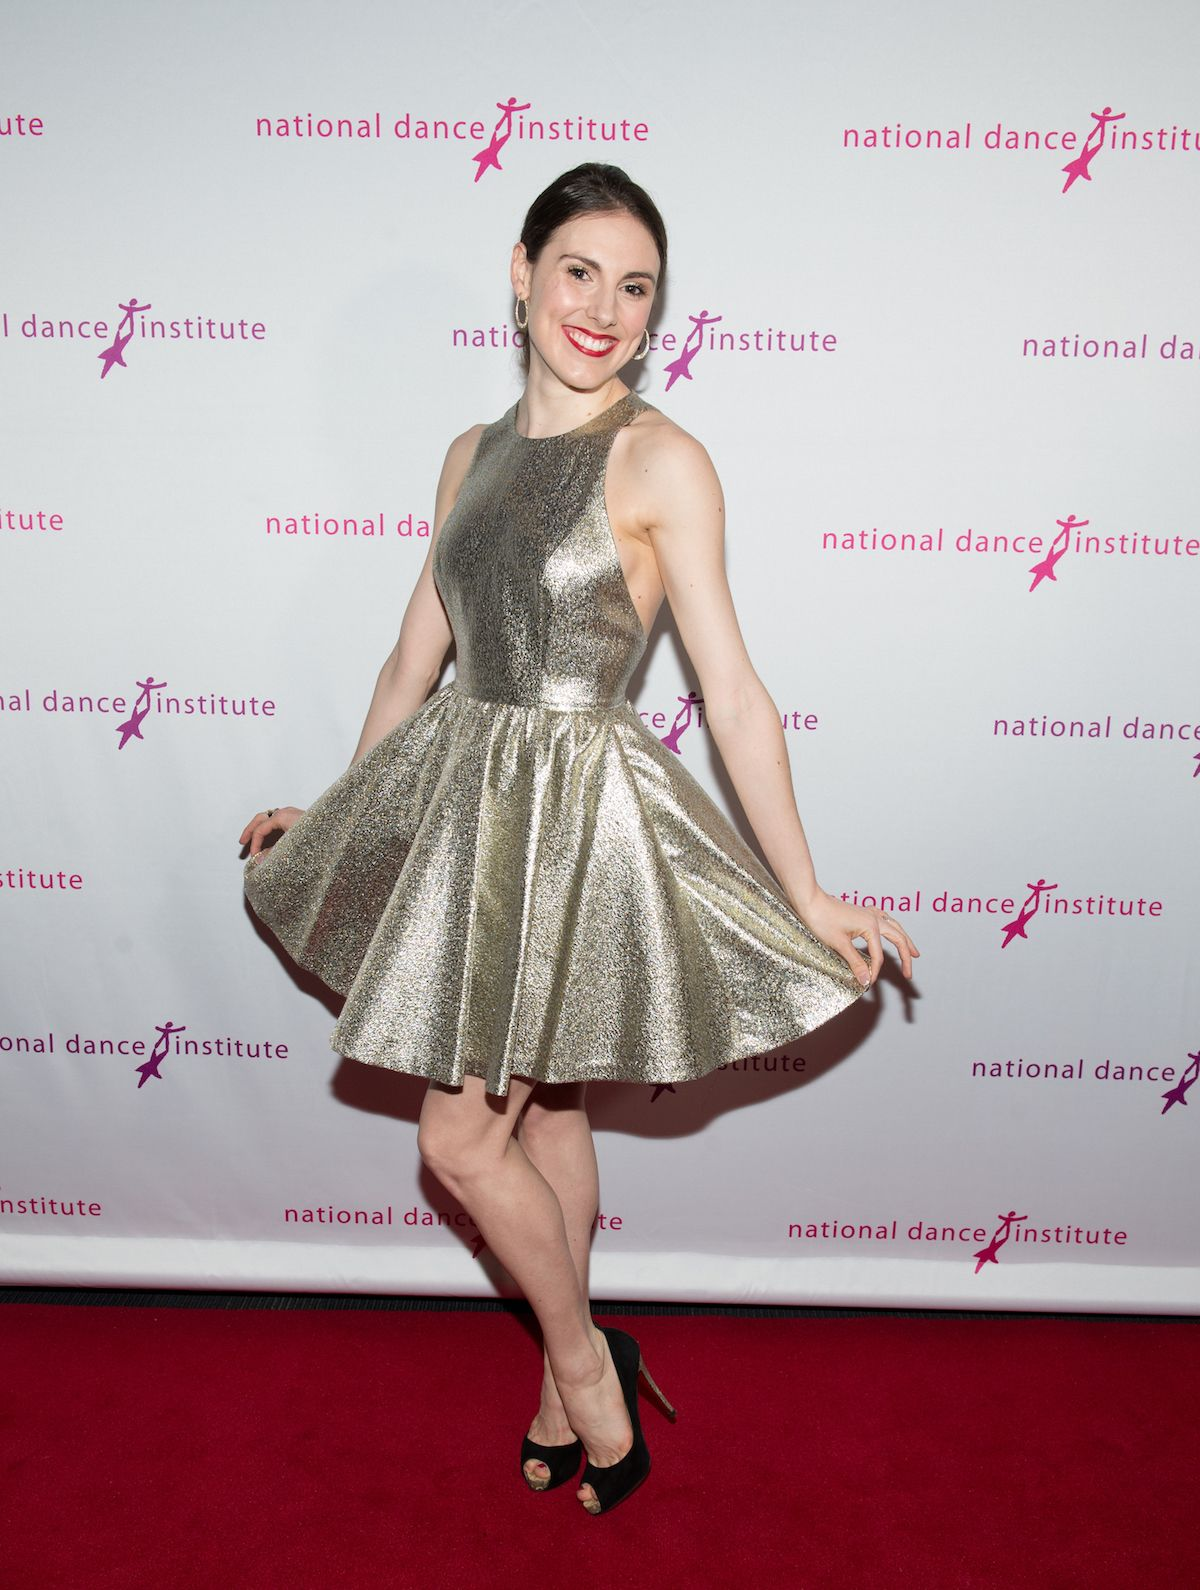 How Star Ballerina Tiler Peck Made Her Career Dreams Come True, Injured Back Be Damned